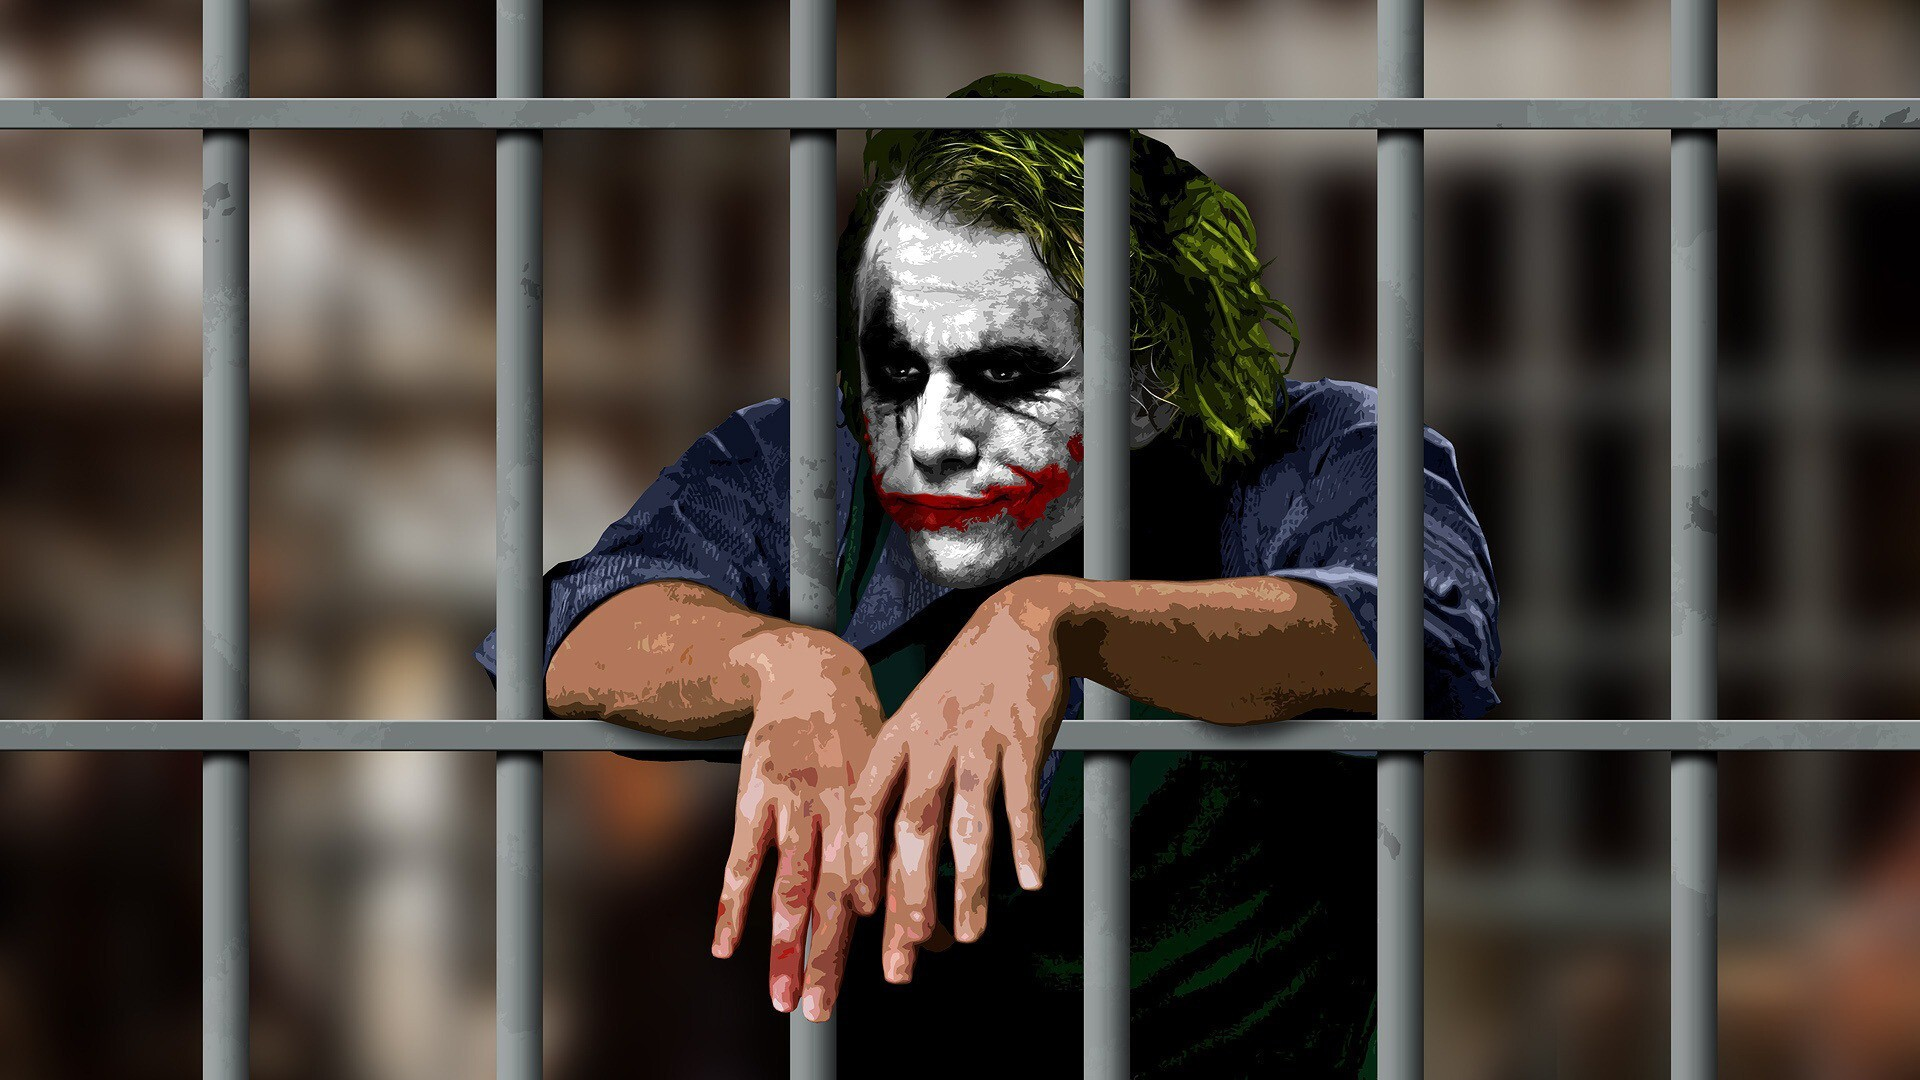 Joker In Jail Movie Scene Of Batman Hd Wallpapers Hd